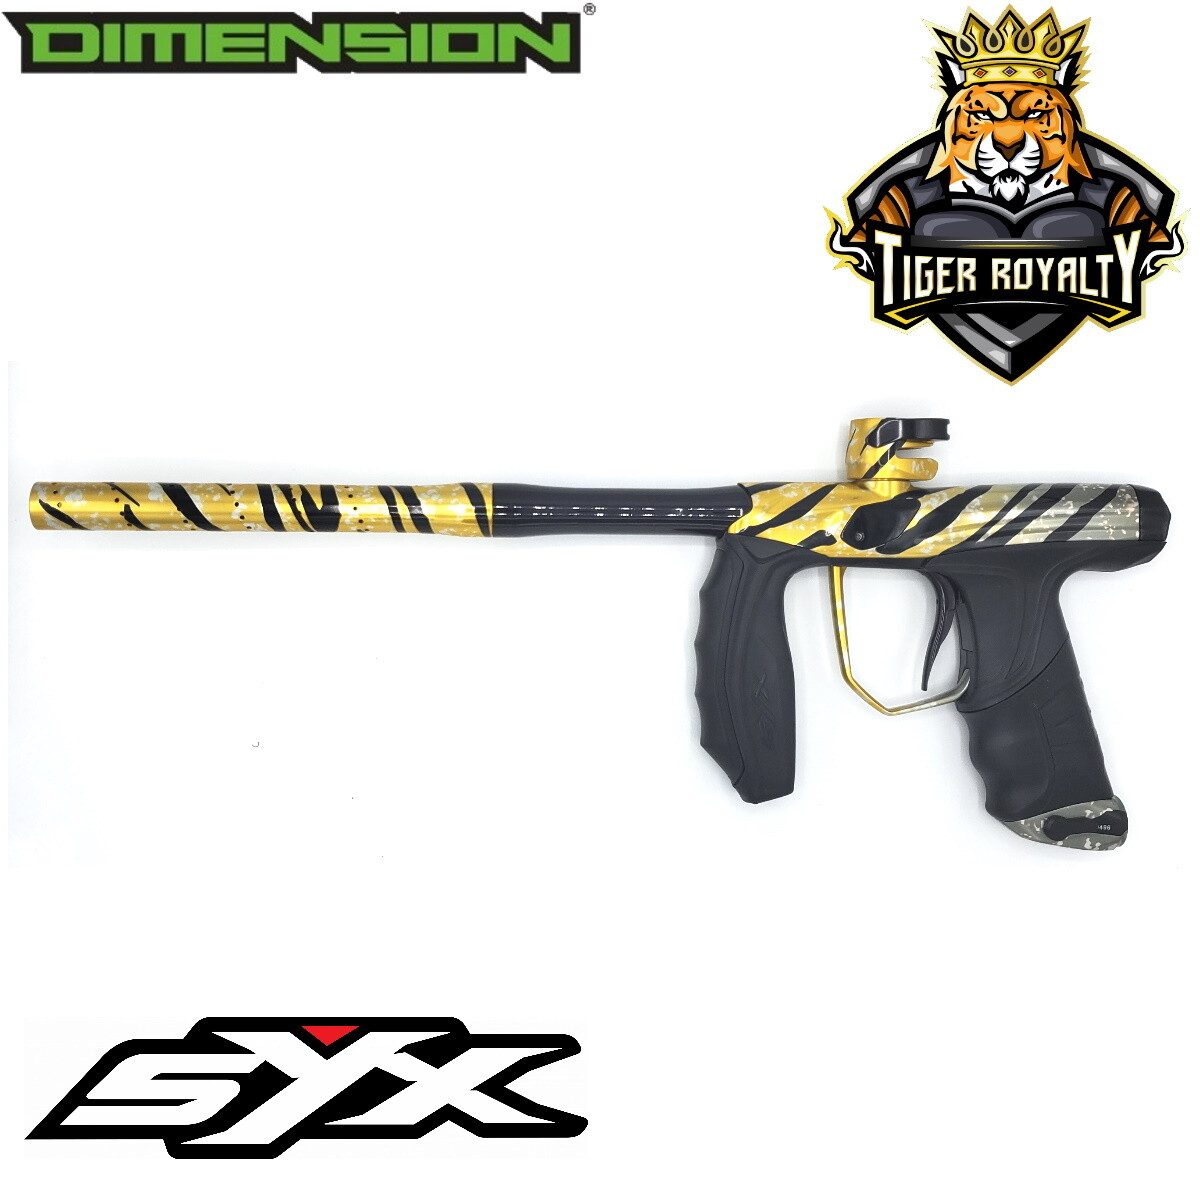 Empire SYX 1.5 - Dimension Limited Edition 1 of 1 / Tiger Royalty - City of Steel